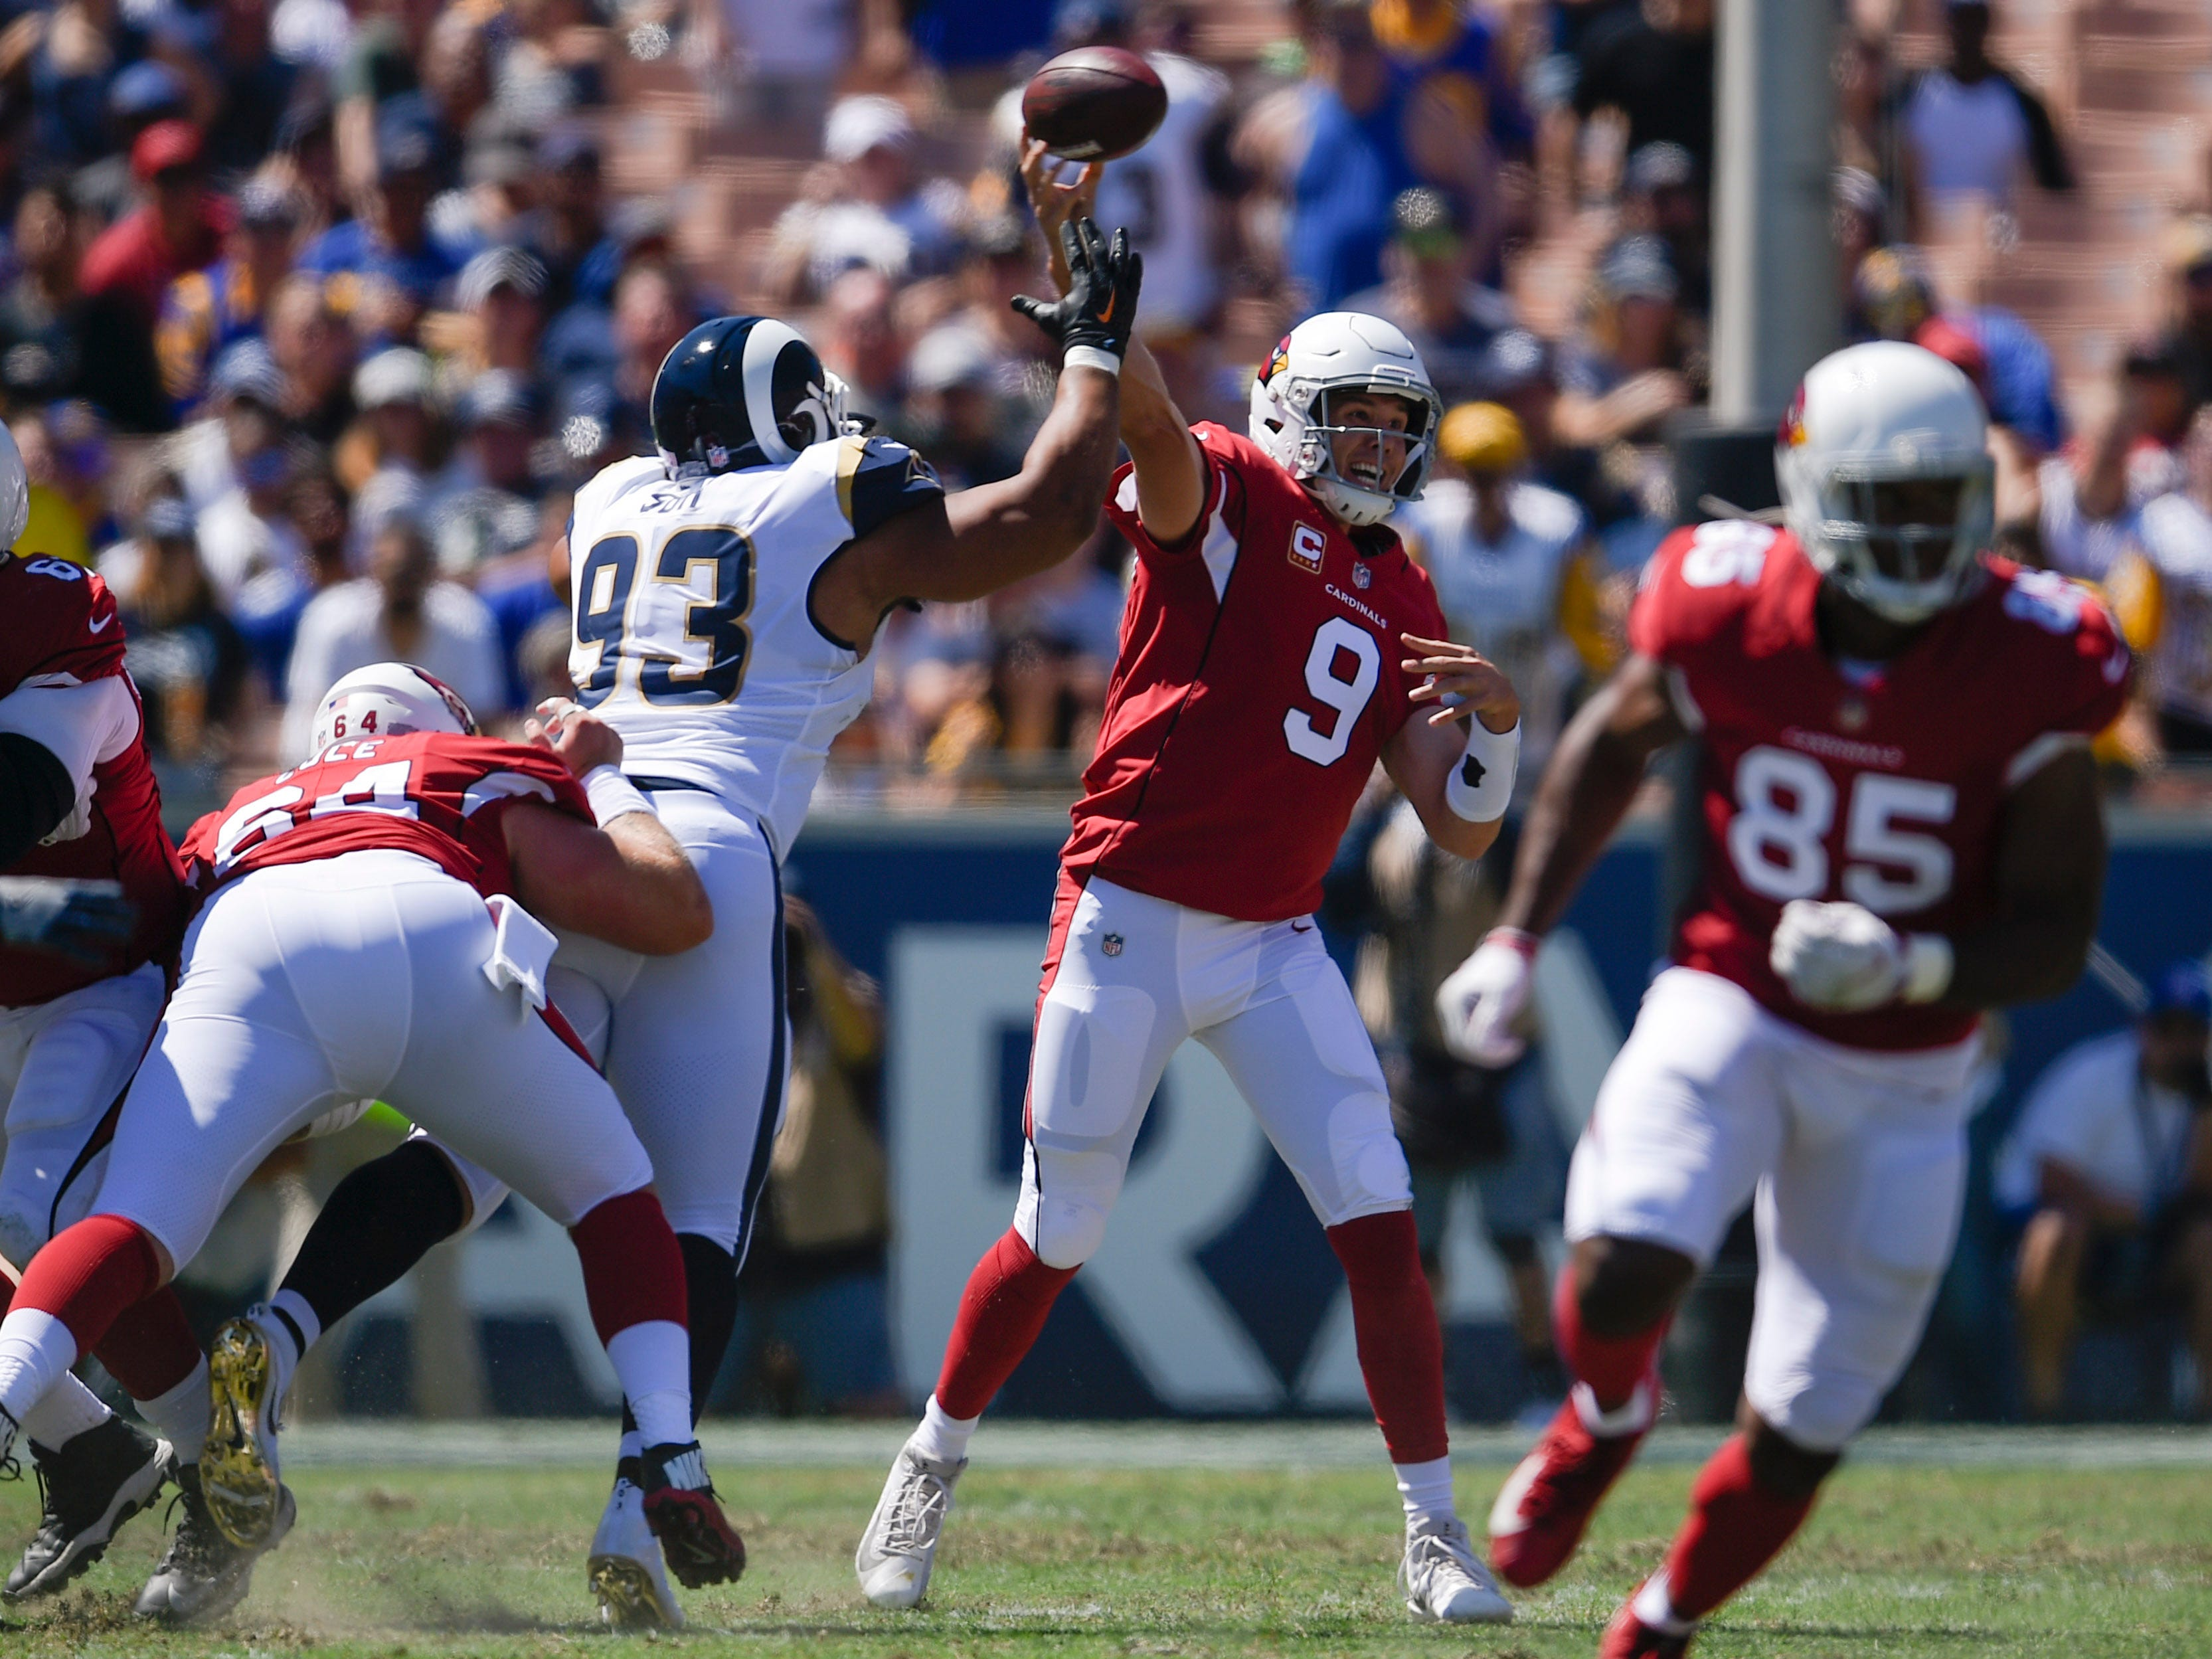 Sep 16, 2018; Los Angeles, CA, USA; Arizona Cardinals quarterback Sam Bradford (9) attempts a [ass while under pressure by Los Angeles Rams defensive tackle Ndamukong Suh (93) during the first half at Los Angeles Memorial Coliseum. Mandatory Credit: Kelvin Kuo-USA TODAY Sports